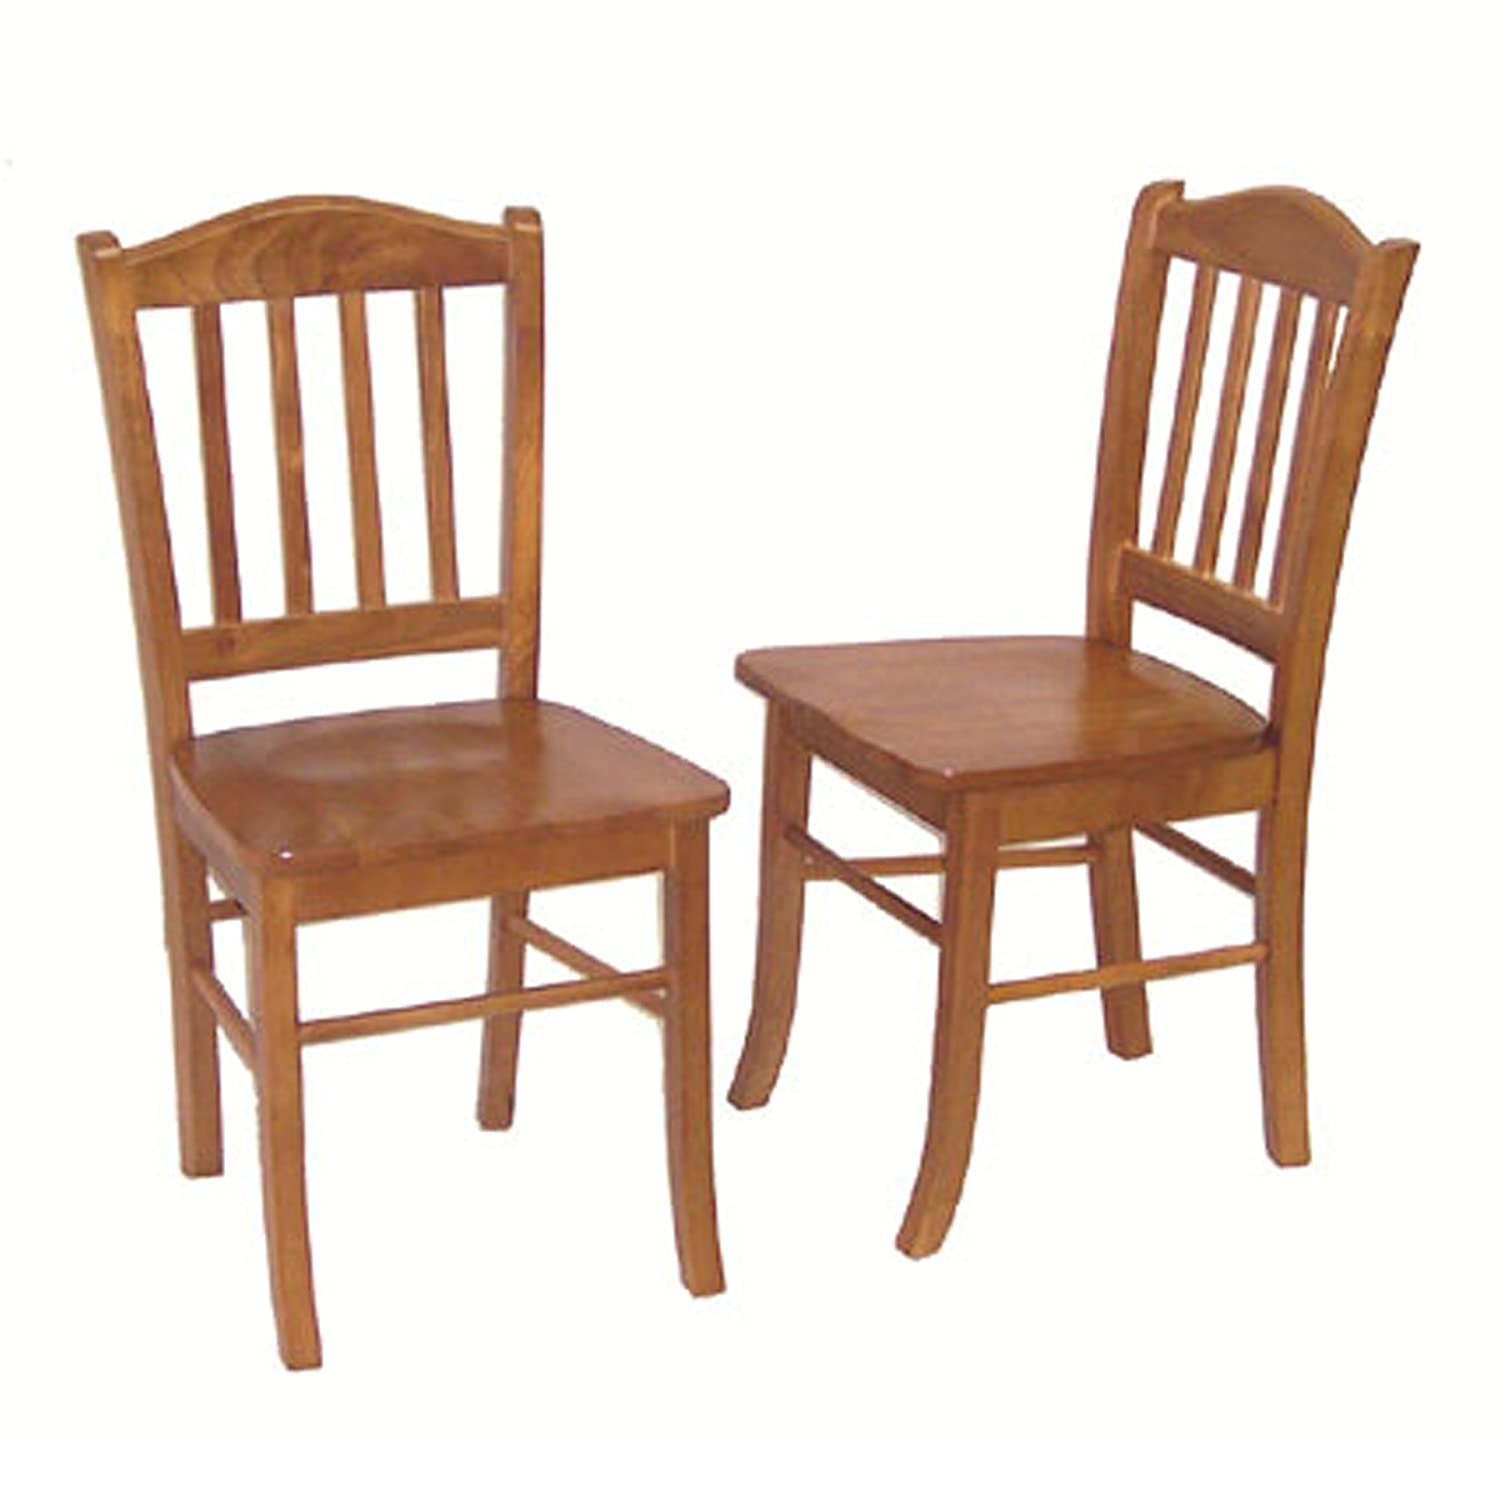 art pamono nouveau of sale oak set at chair chairs for